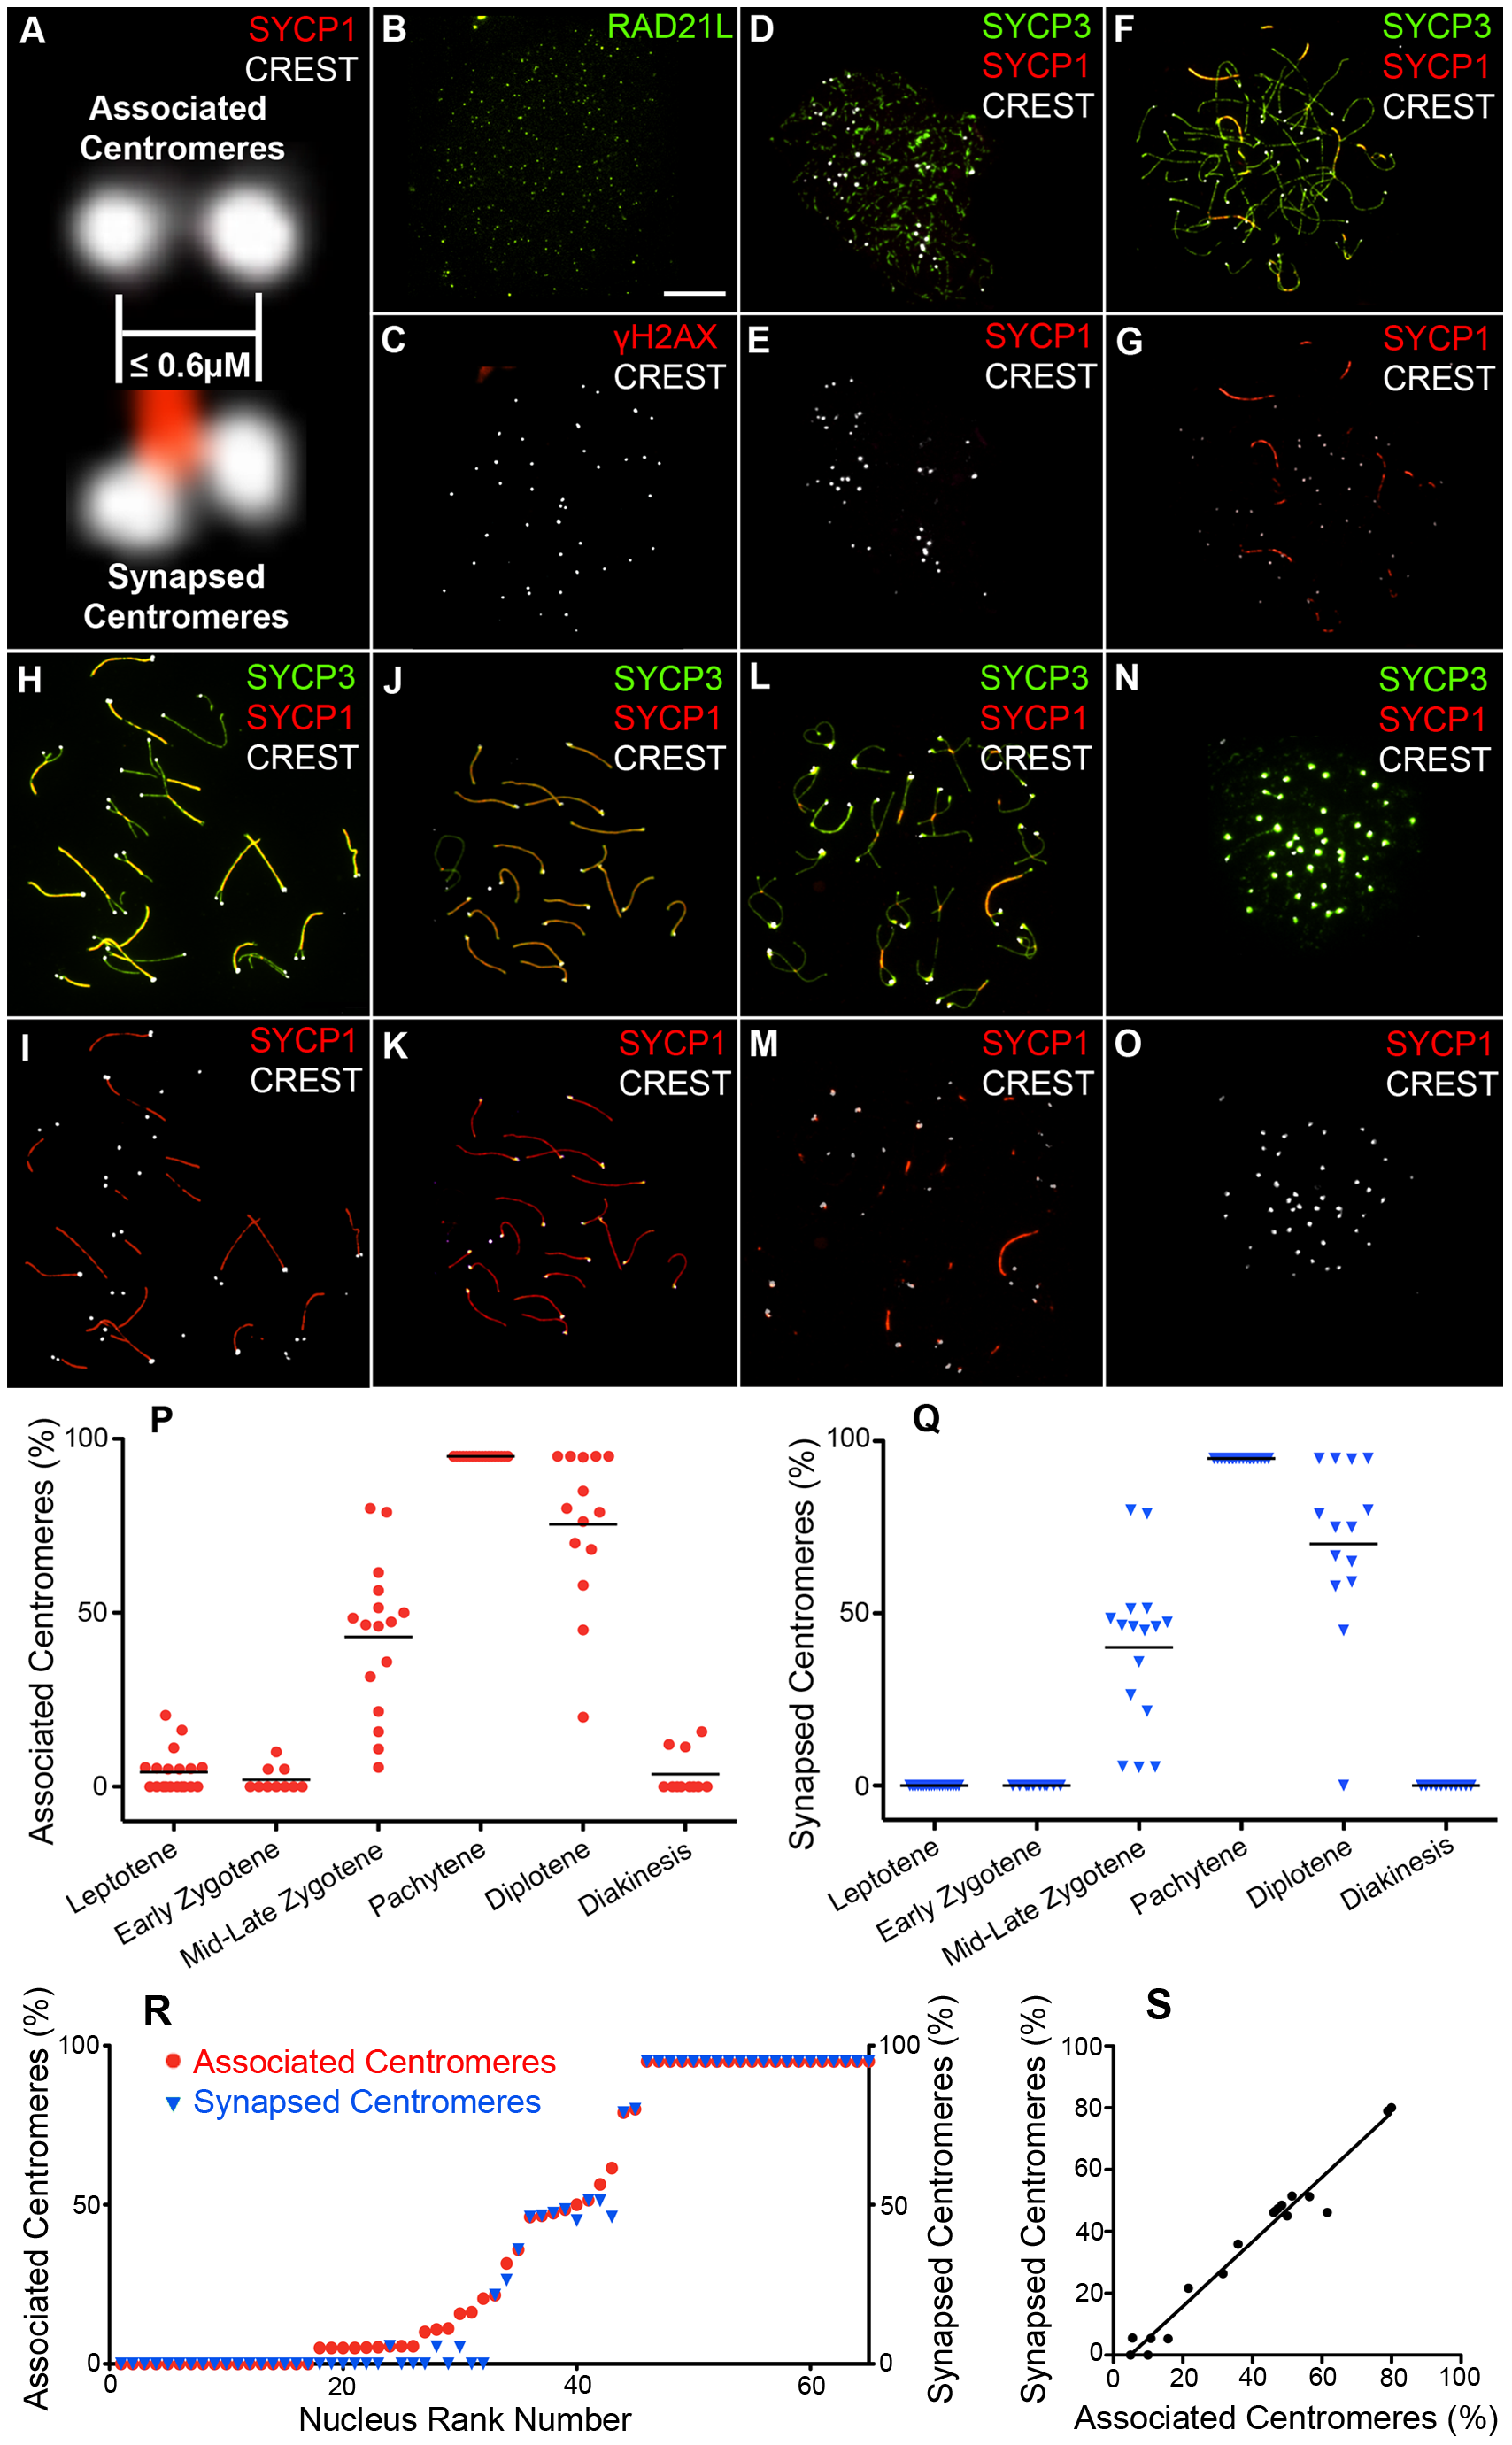 Centromere association and synapsis during meiotic prophase I.